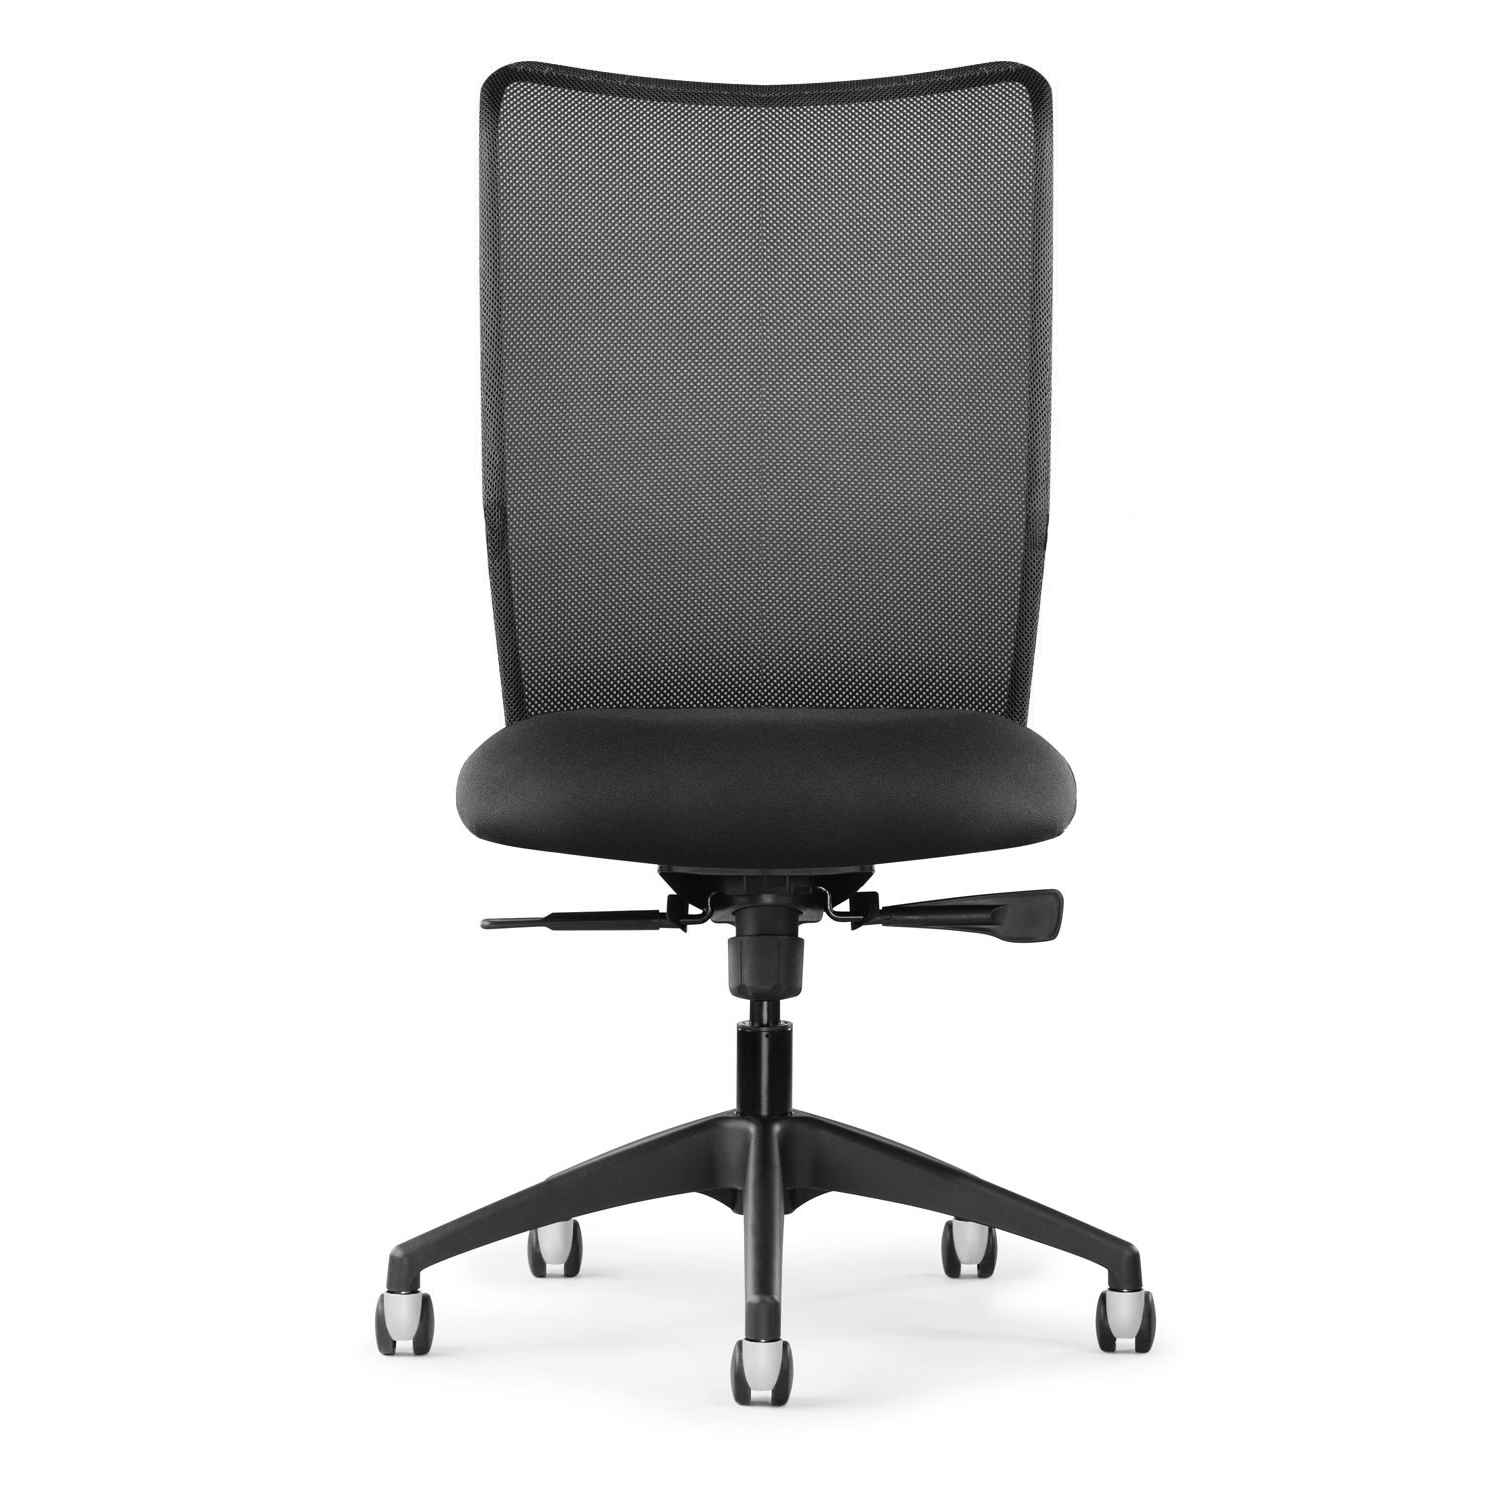 Inertia black mesh highback executive computer chair